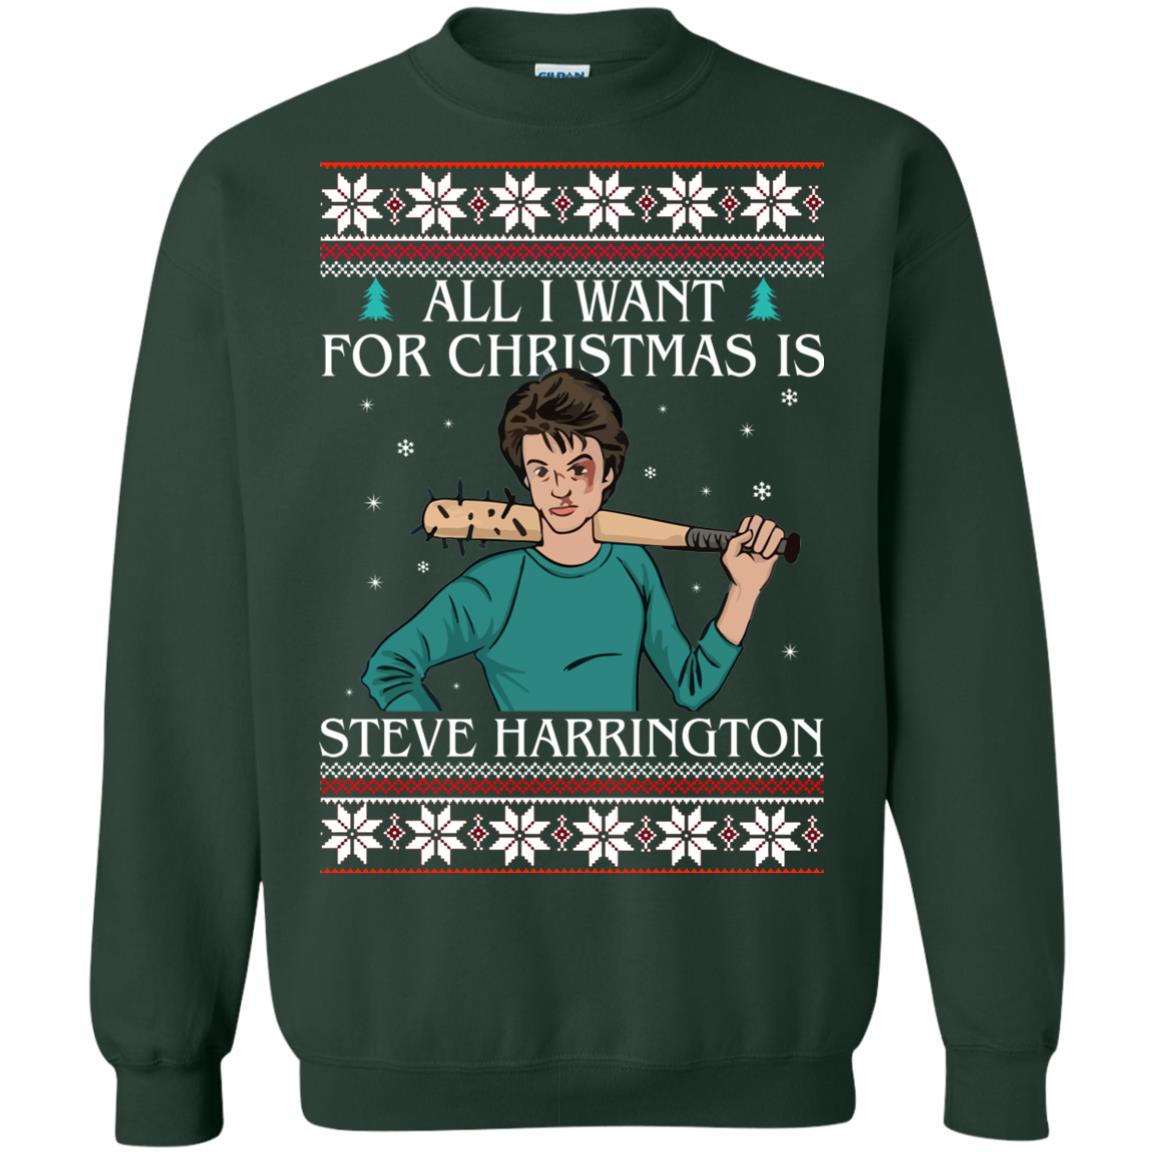 image 4037 - All I want for Christmas is Steve Harrington Ugly Sweater